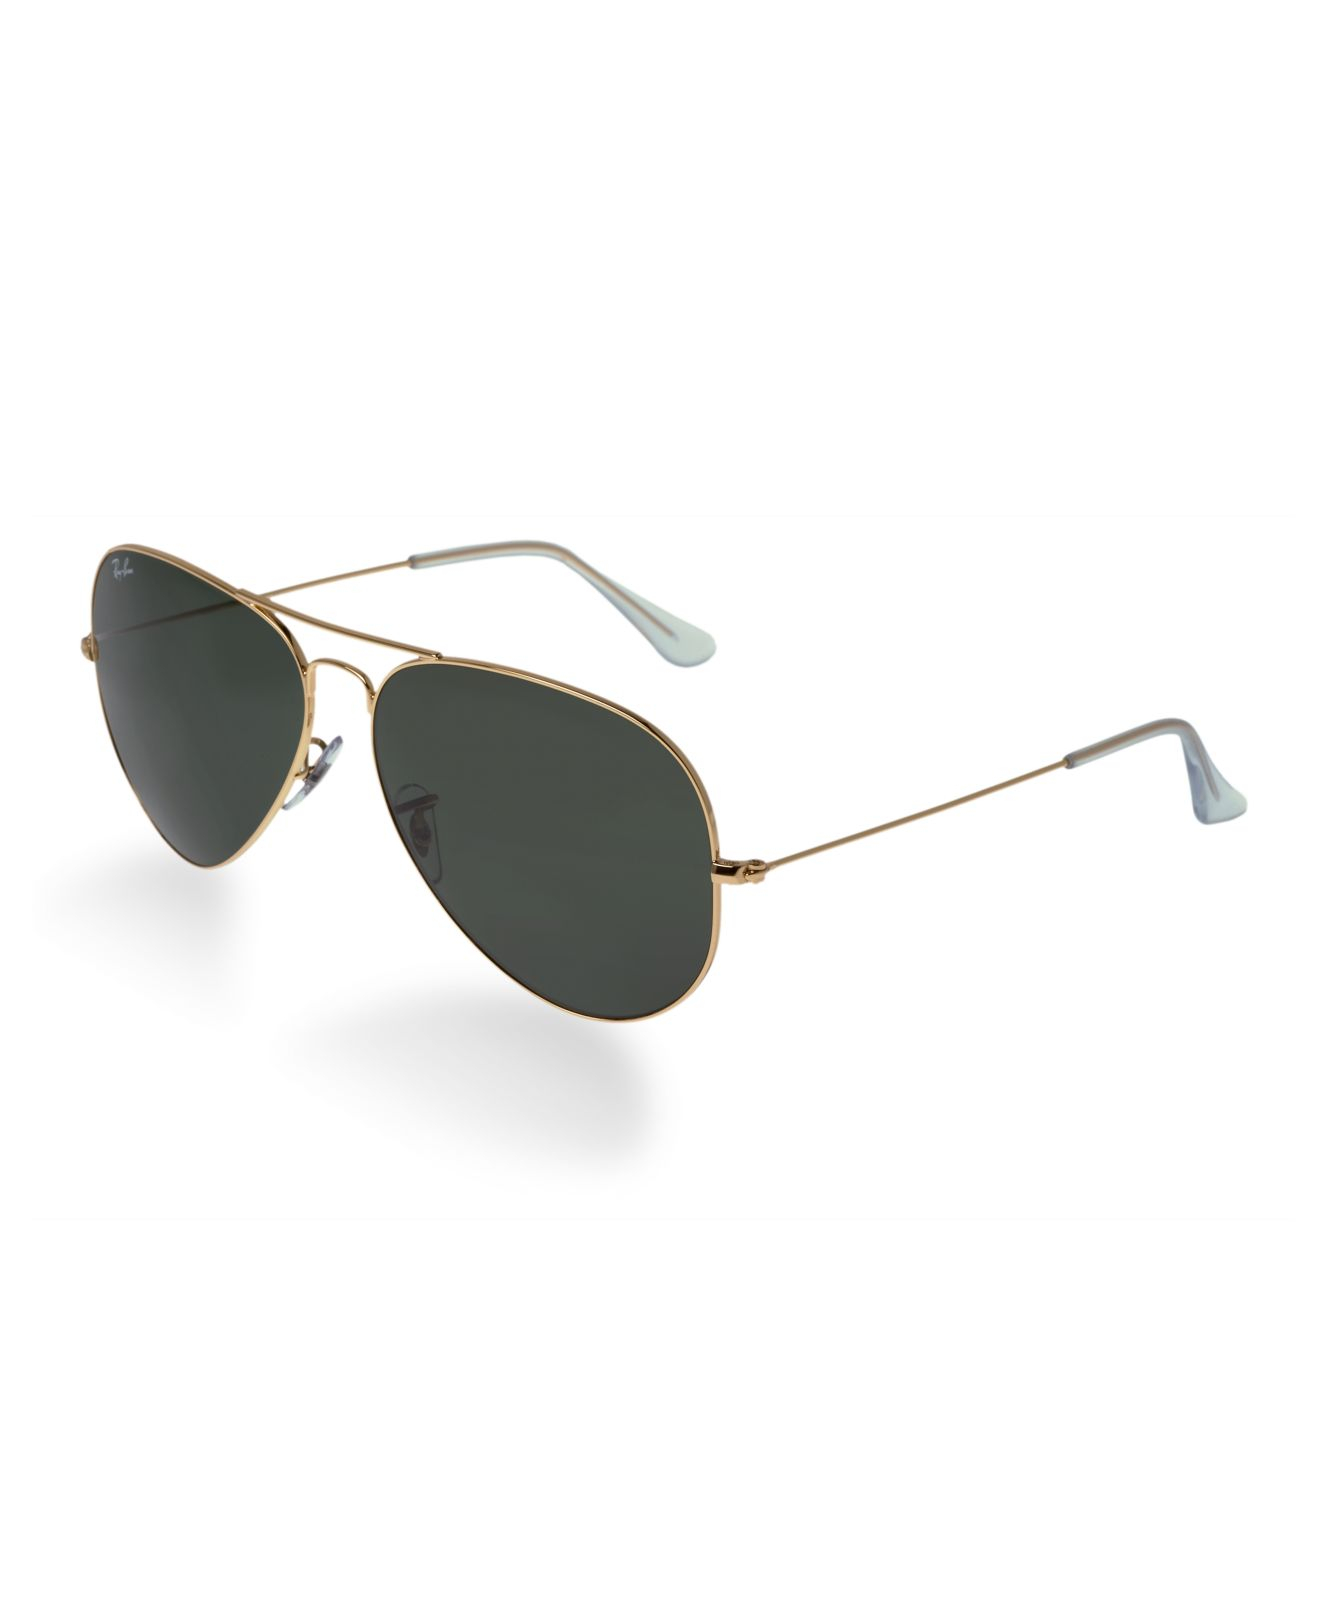 lyst ray ban rb3025 aviator large metal 58mm sunglasses in metallic. Black Bedroom Furniture Sets. Home Design Ideas